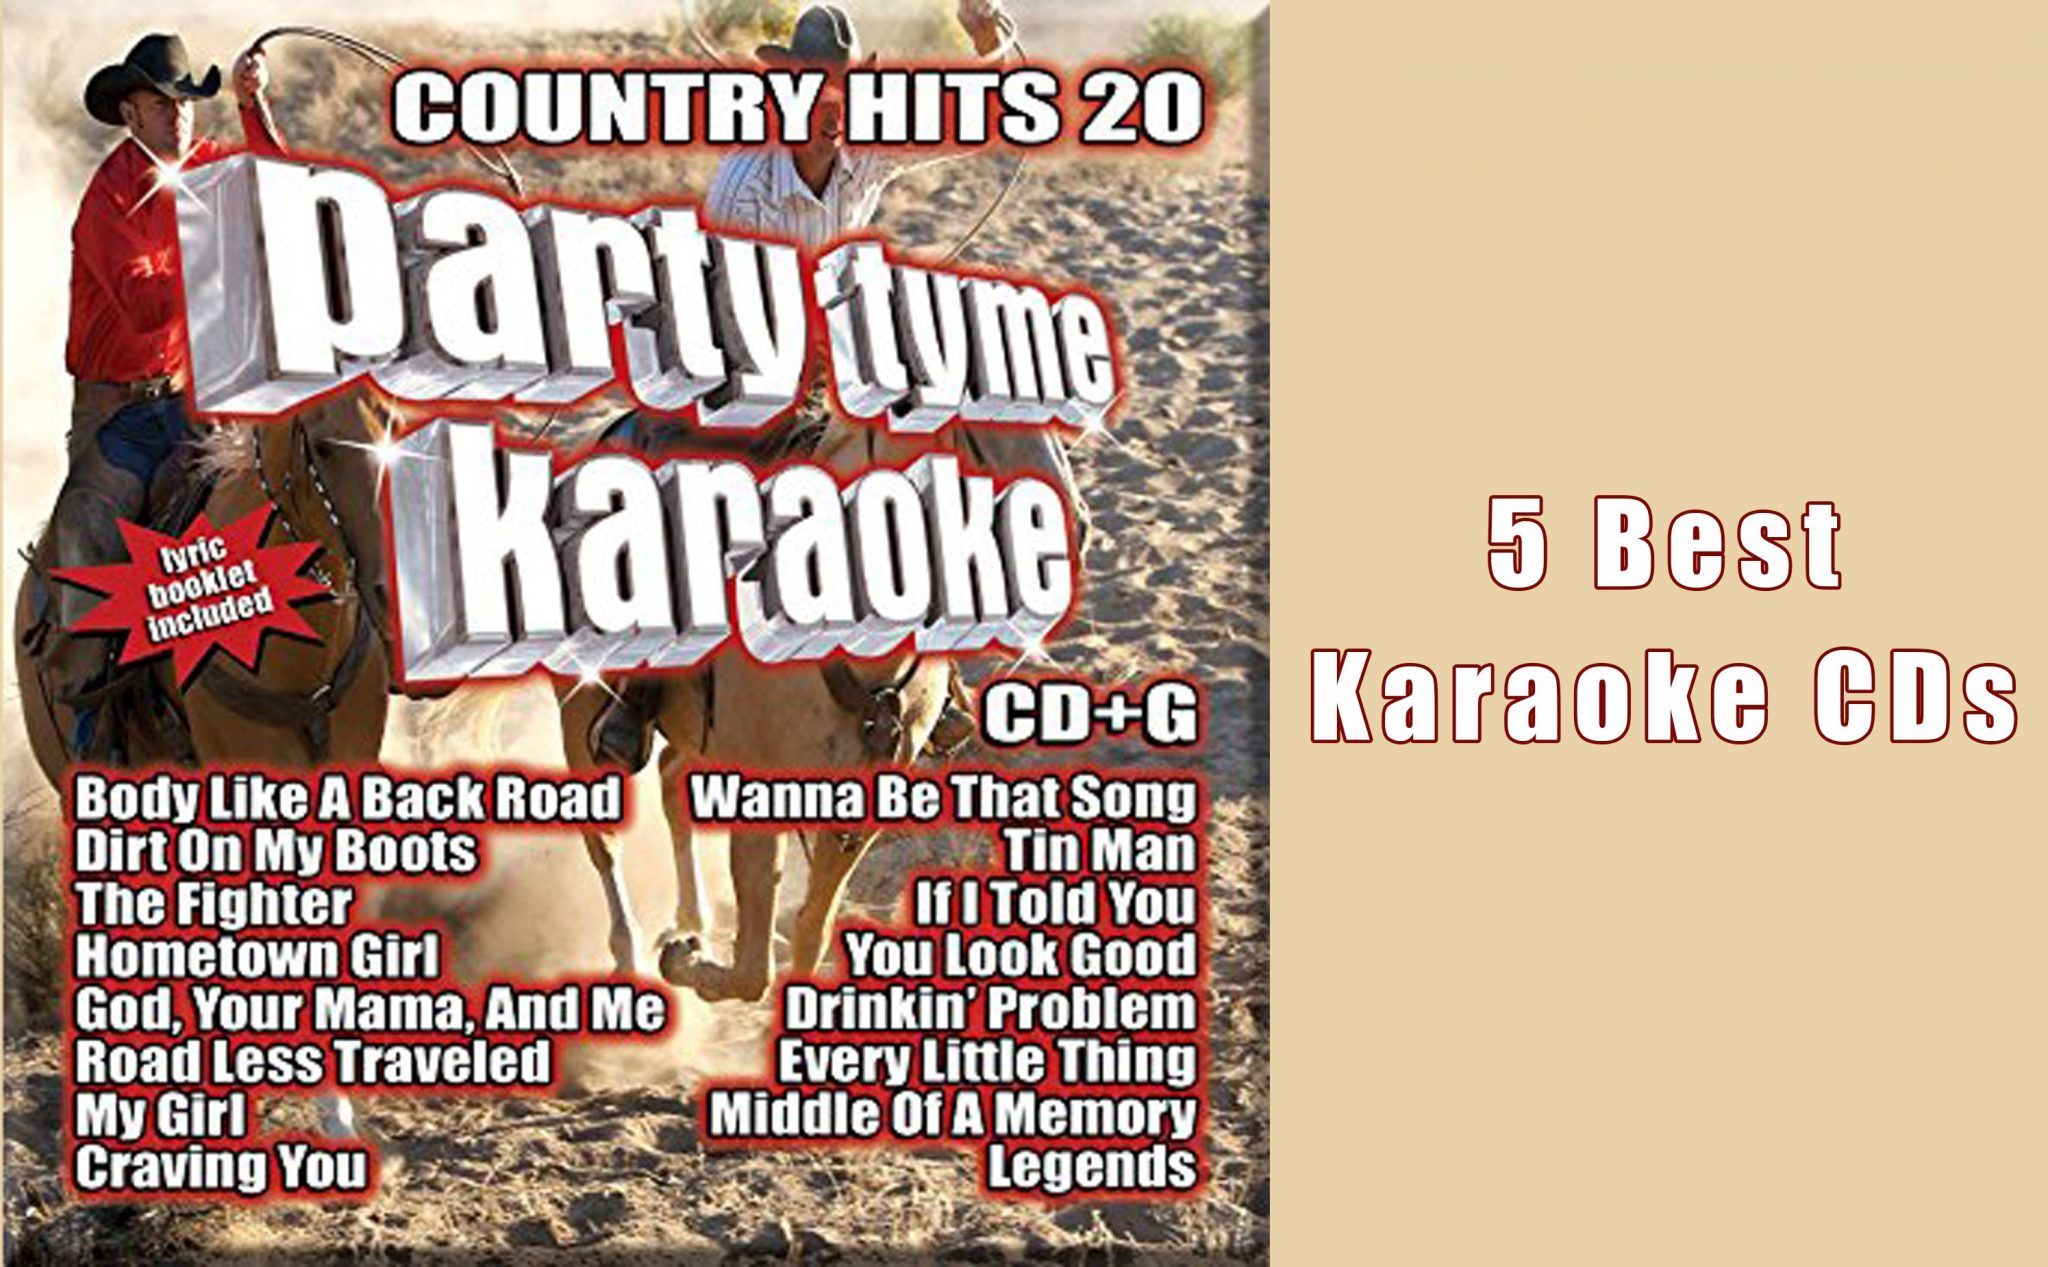 Top 5 Best Karaoke CDs You Will Like - Karaoke Bananza